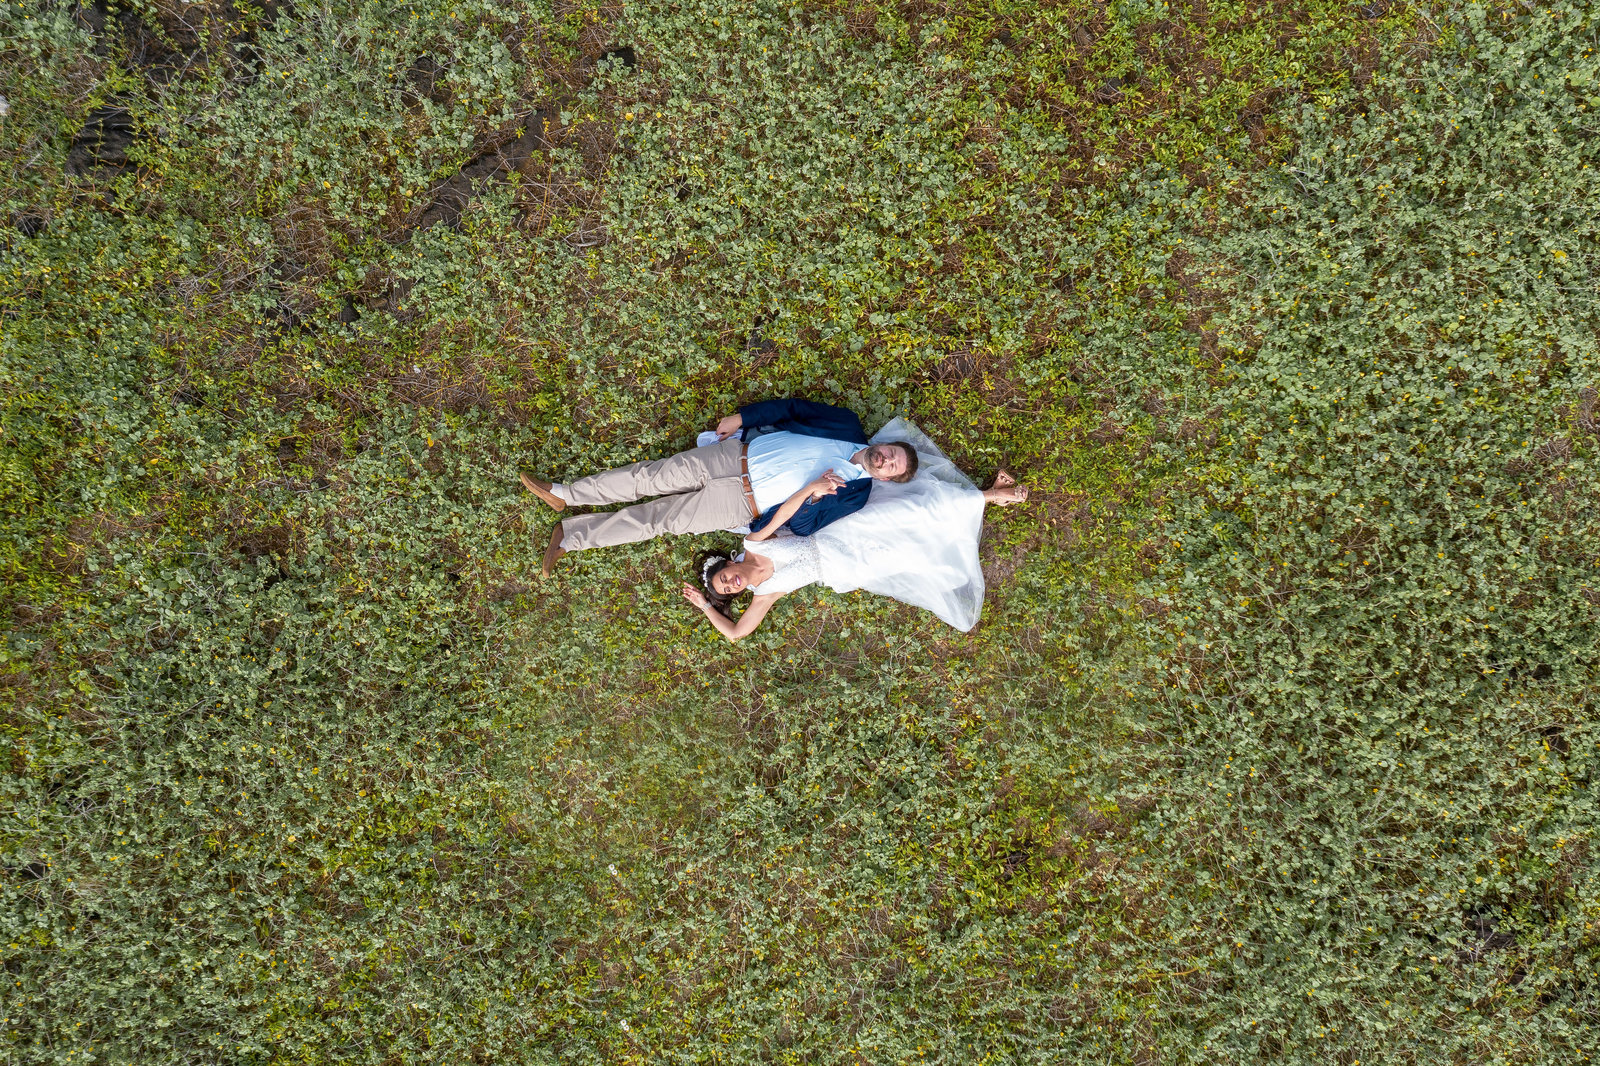 hawaiidronewedding